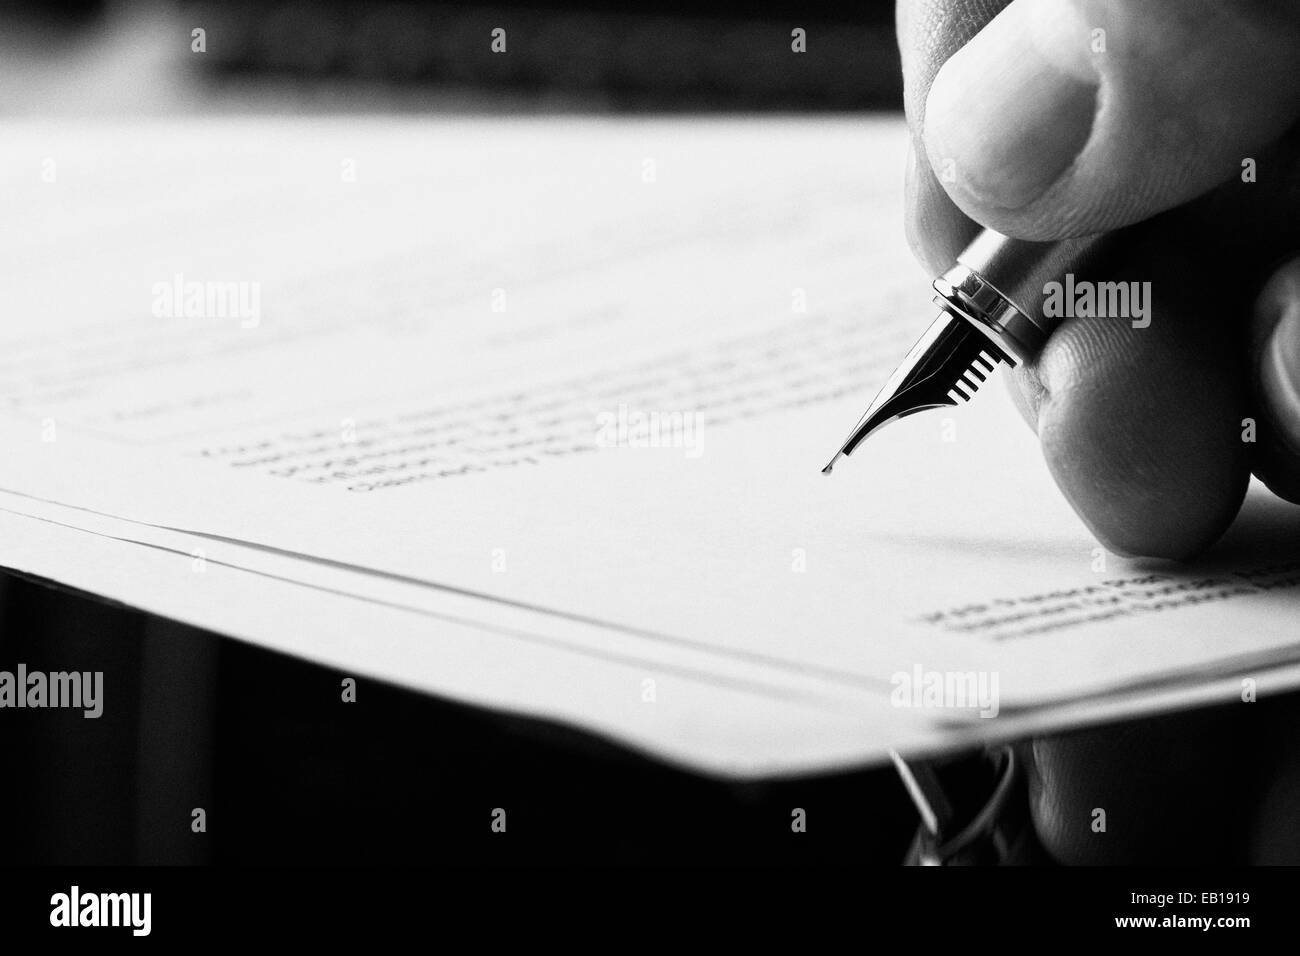 A hand holding a fountain pen and about to sign a letter. Styling and small amount of grain applied. - Stock Image